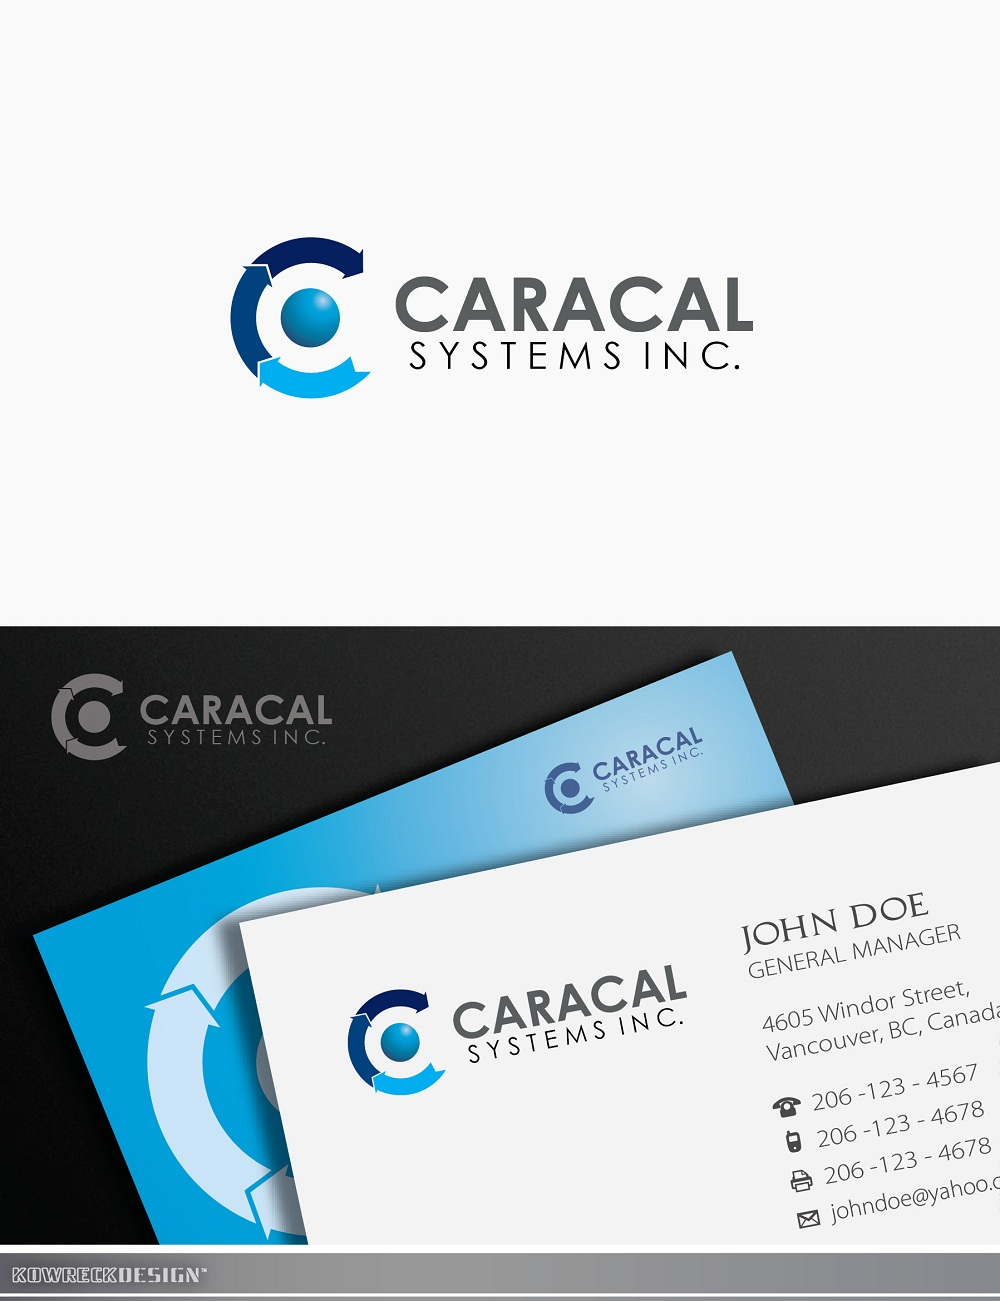 Logo Design by kowreck - Entry No. 81 in the Logo Design Contest Inspiring Logo Design for Caracal Systems Inc..